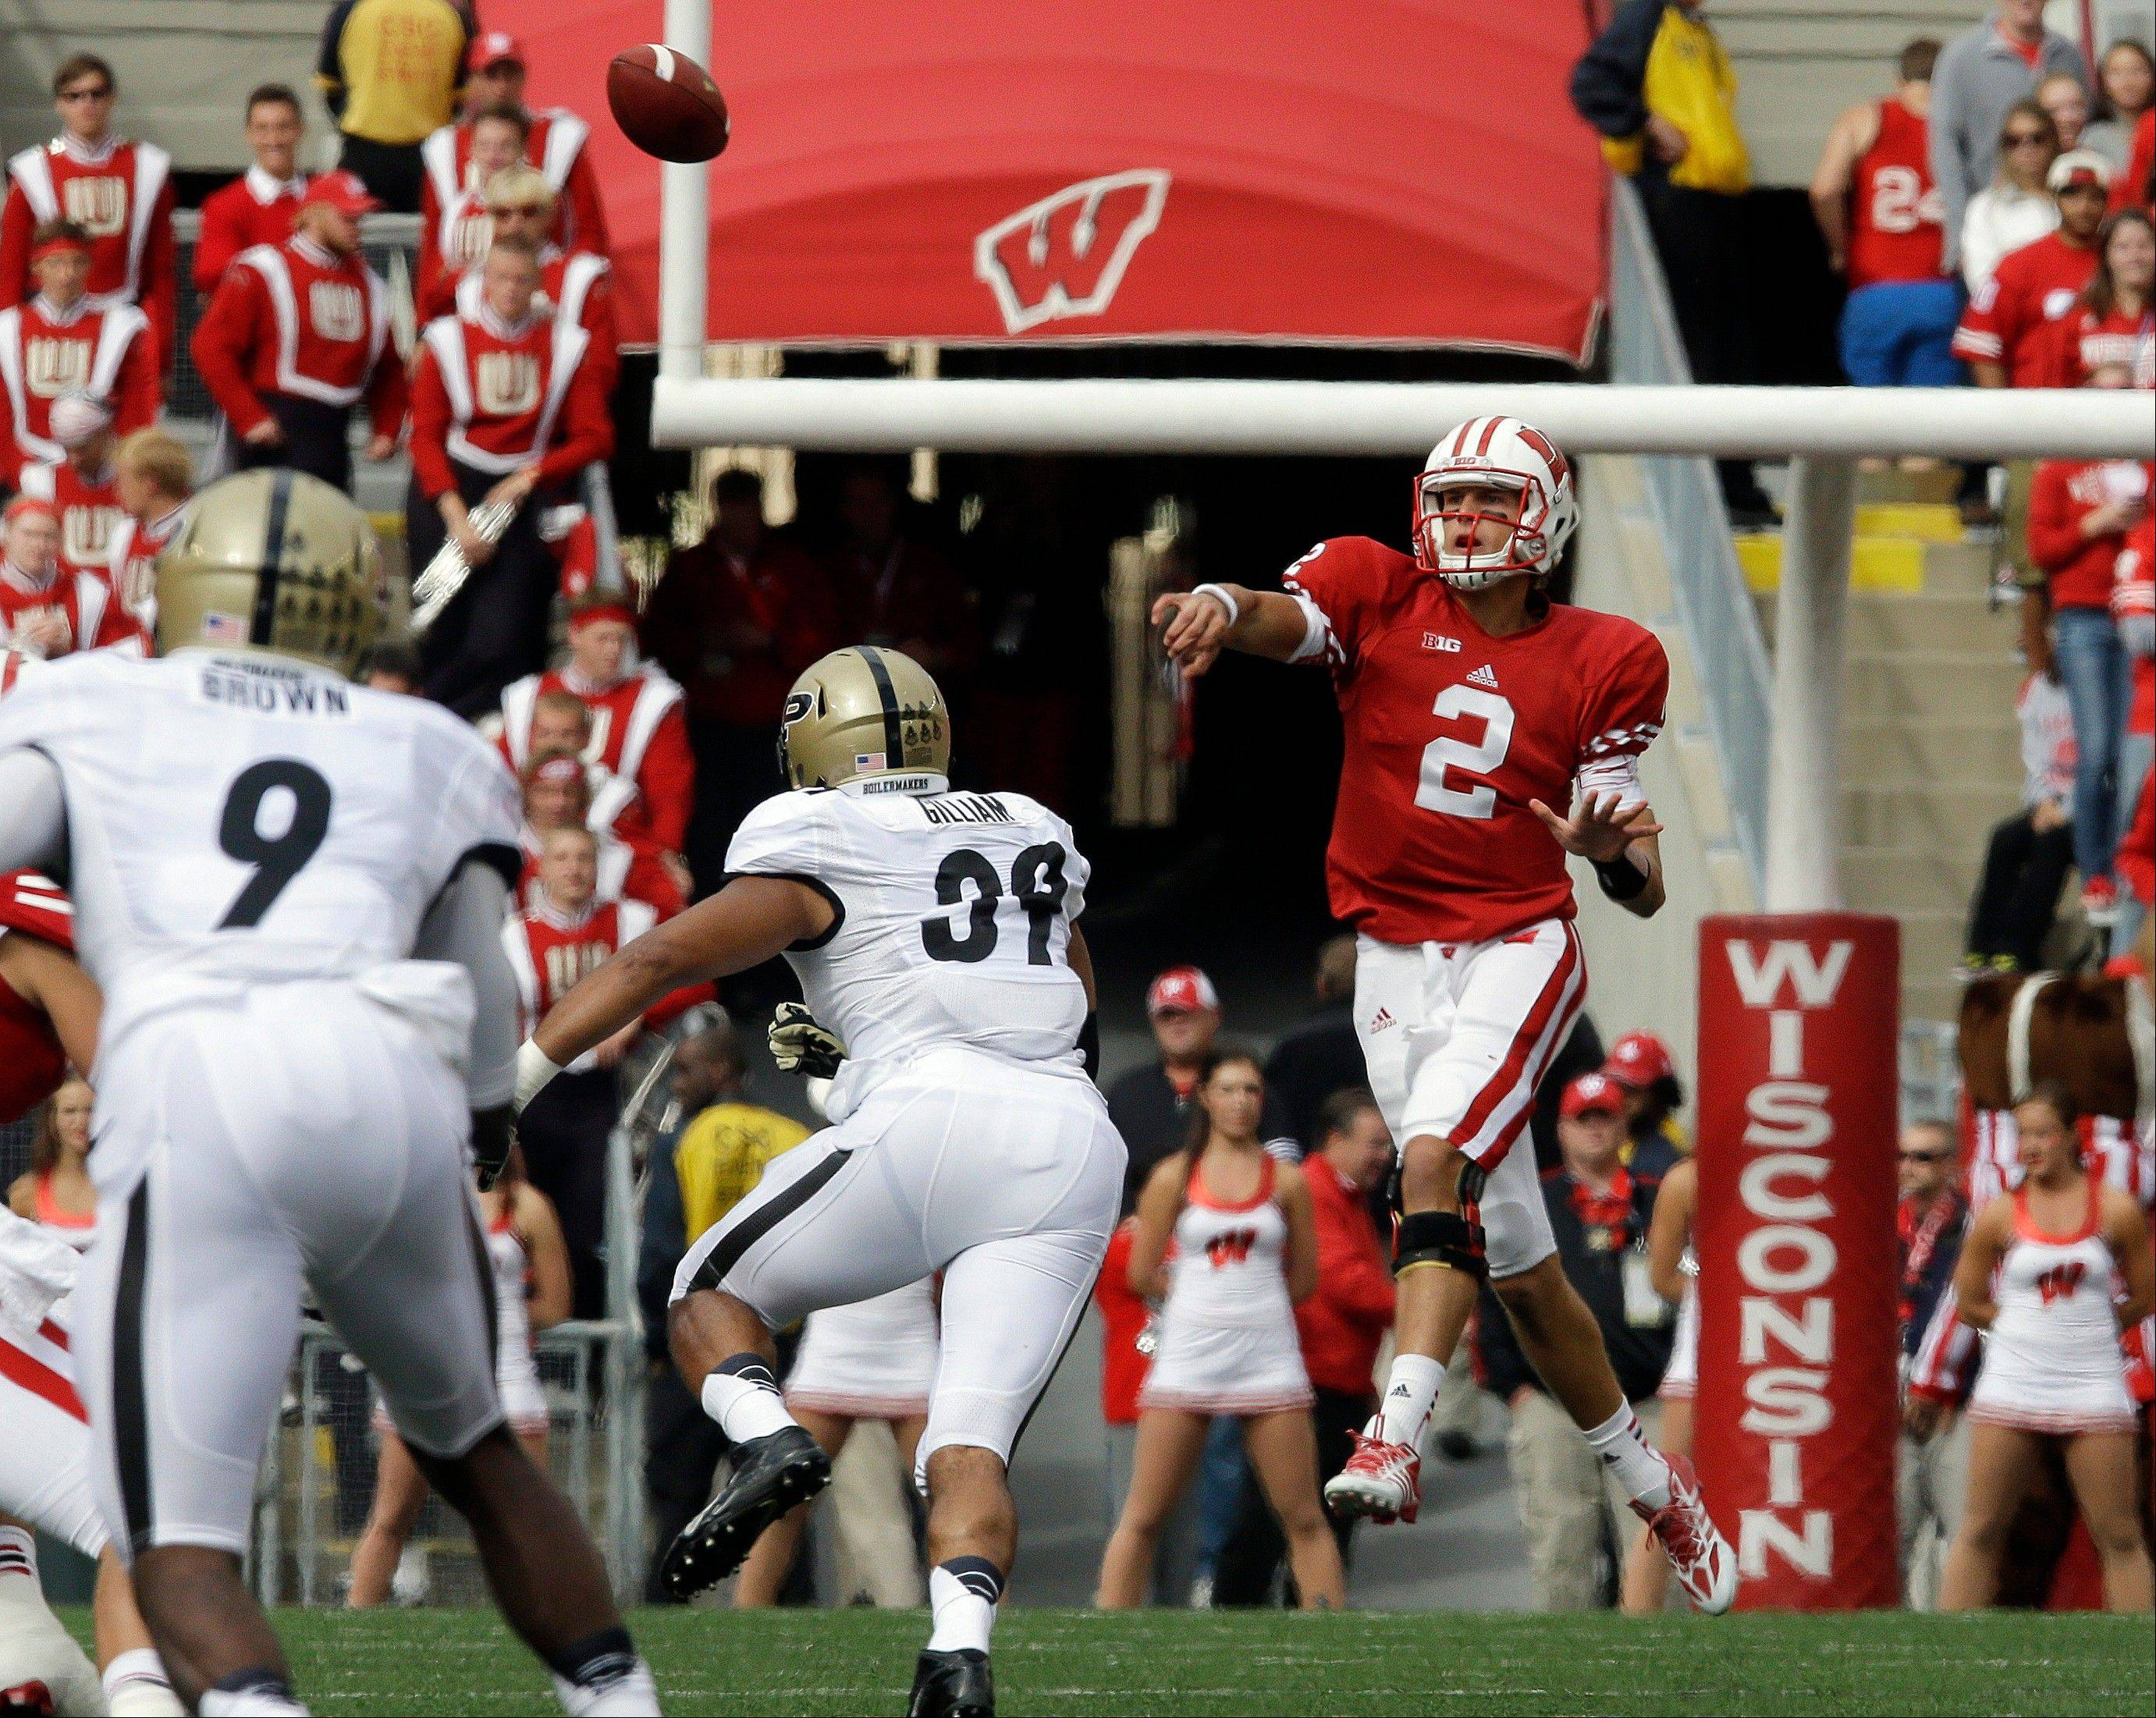 Wisconsin quarterback Joel Stave throws a pass during the first half of last Saturday�s game against Purdue in Madison, Wis. Wisconsin ranks 90th in the country in passing offense (198 yards per game).